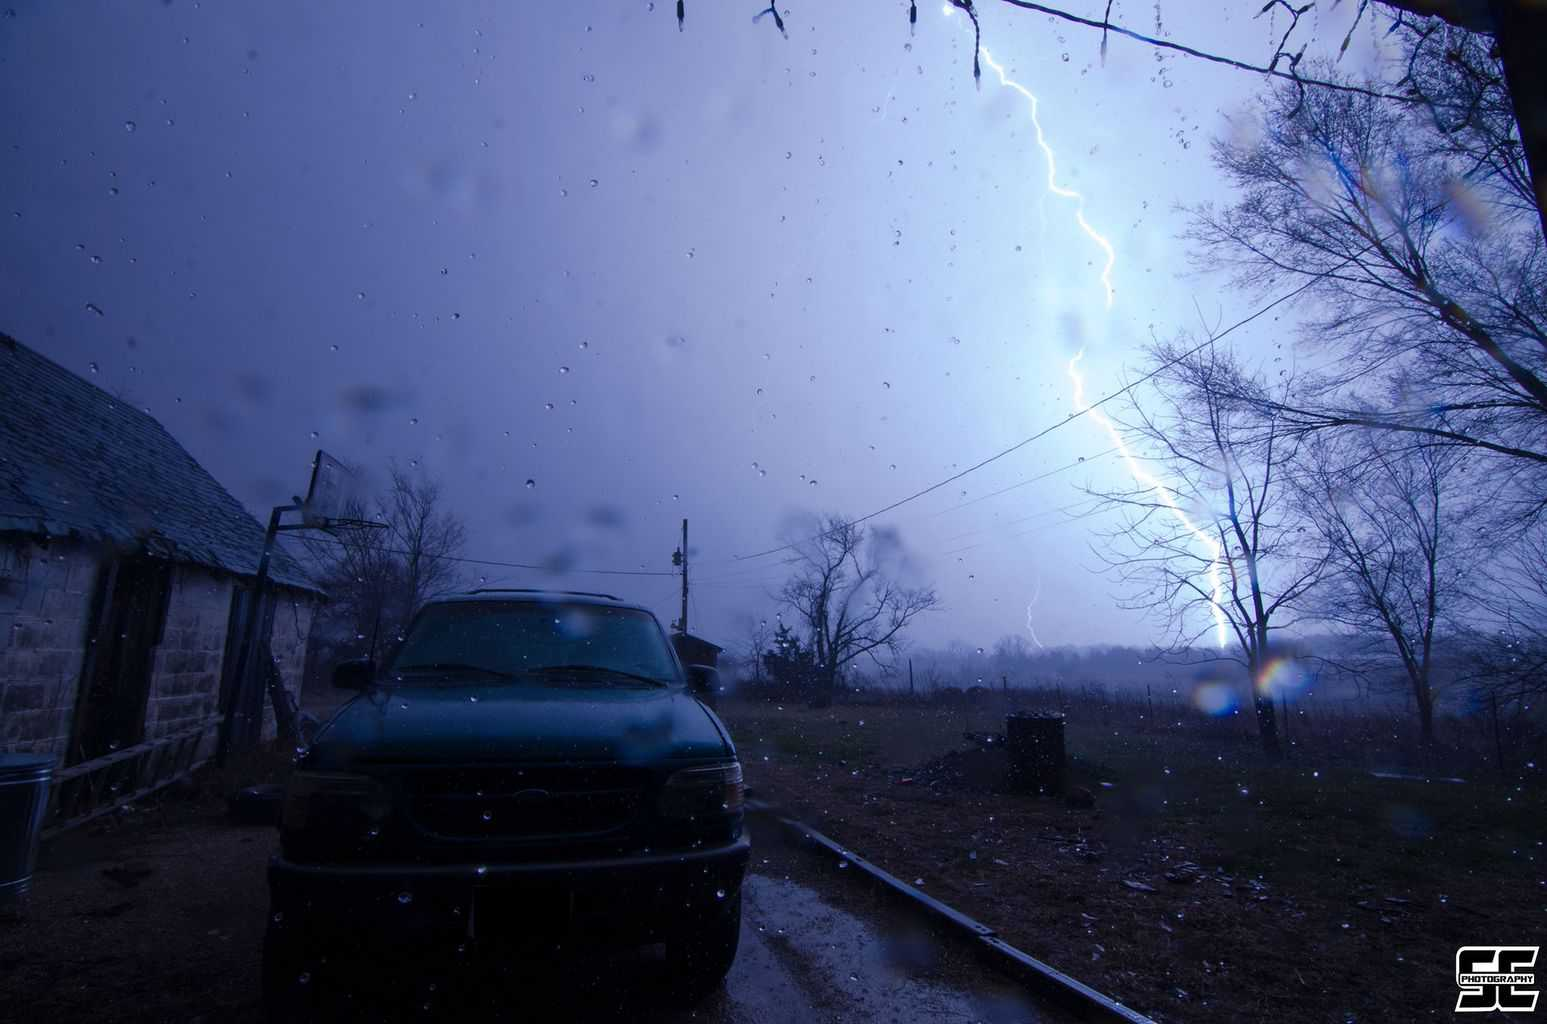 Incredible close range CG last night near Stover, MO! First lightning shot of the year!